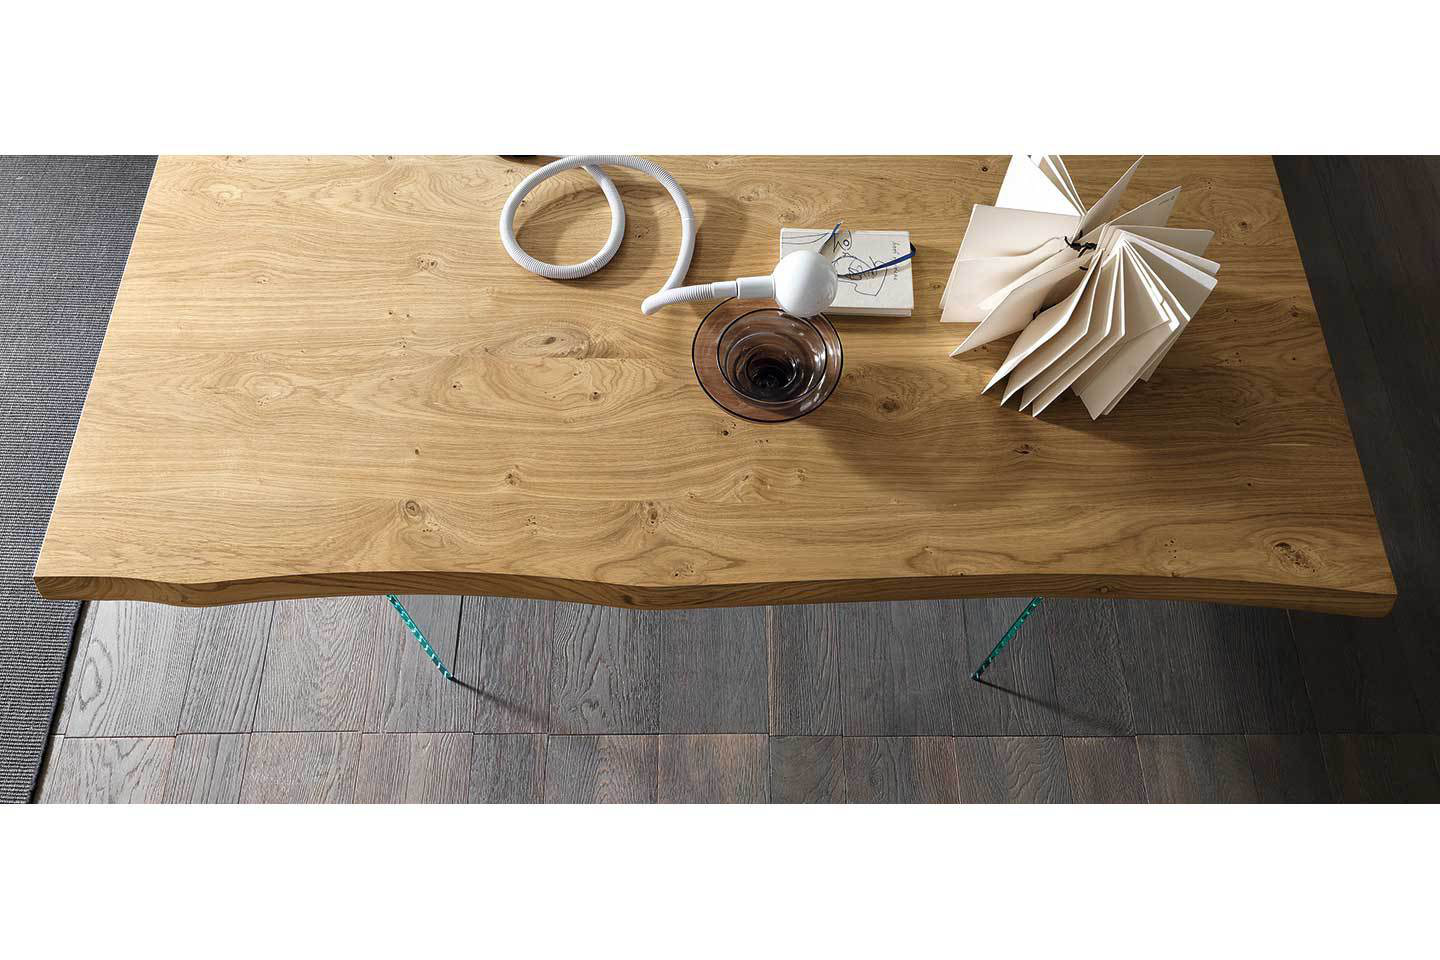 Mobili Italia_ALTACOM MERIDIANO table